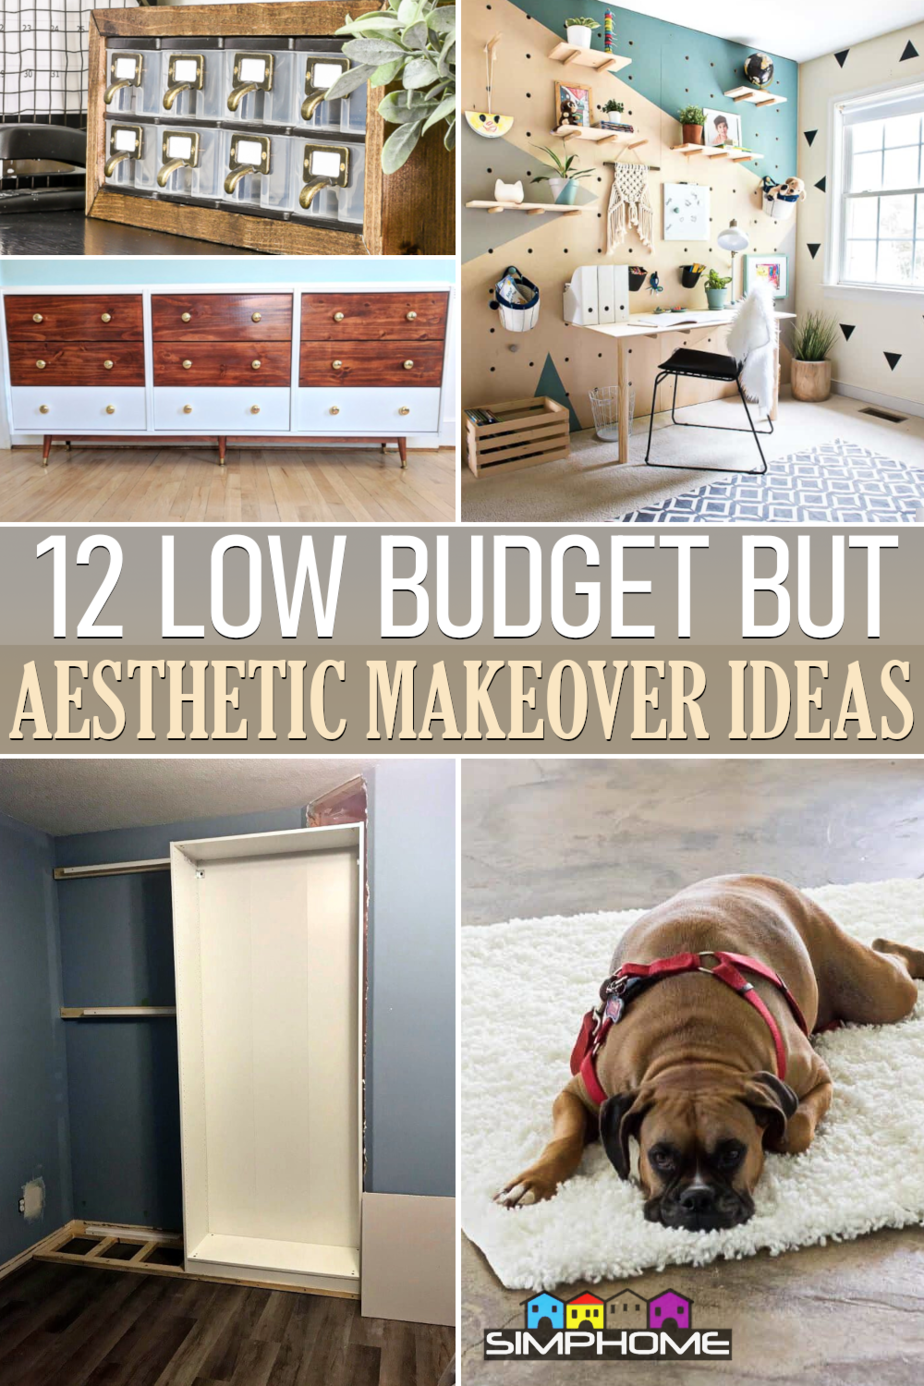 12 Low Budget But Aesthetic Bedroom Makeover Ideas via Simphome.comFeatured